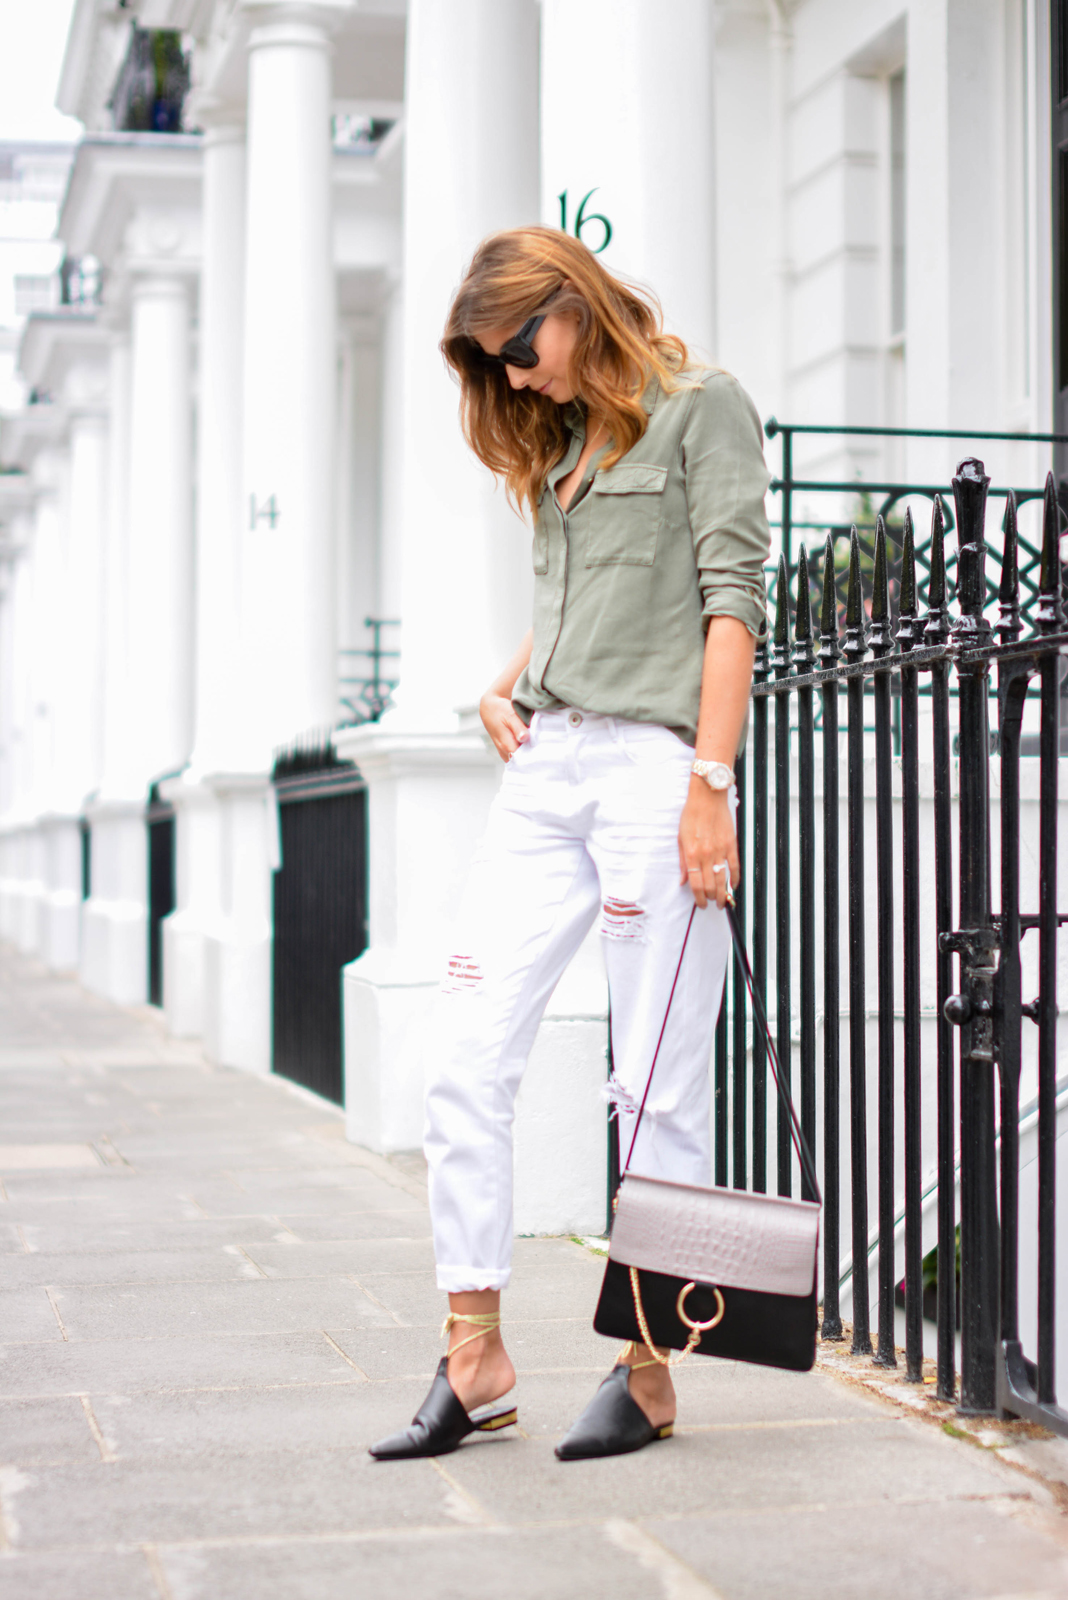 EJSTYLE - Emma Hill wears Chloe Faye dupe style bag, white ripped boyfriend jeans, khaki shirt, chanel style black mules flat shoes with gold ankle ties, chunky black cats eye sunglasses, OOTD